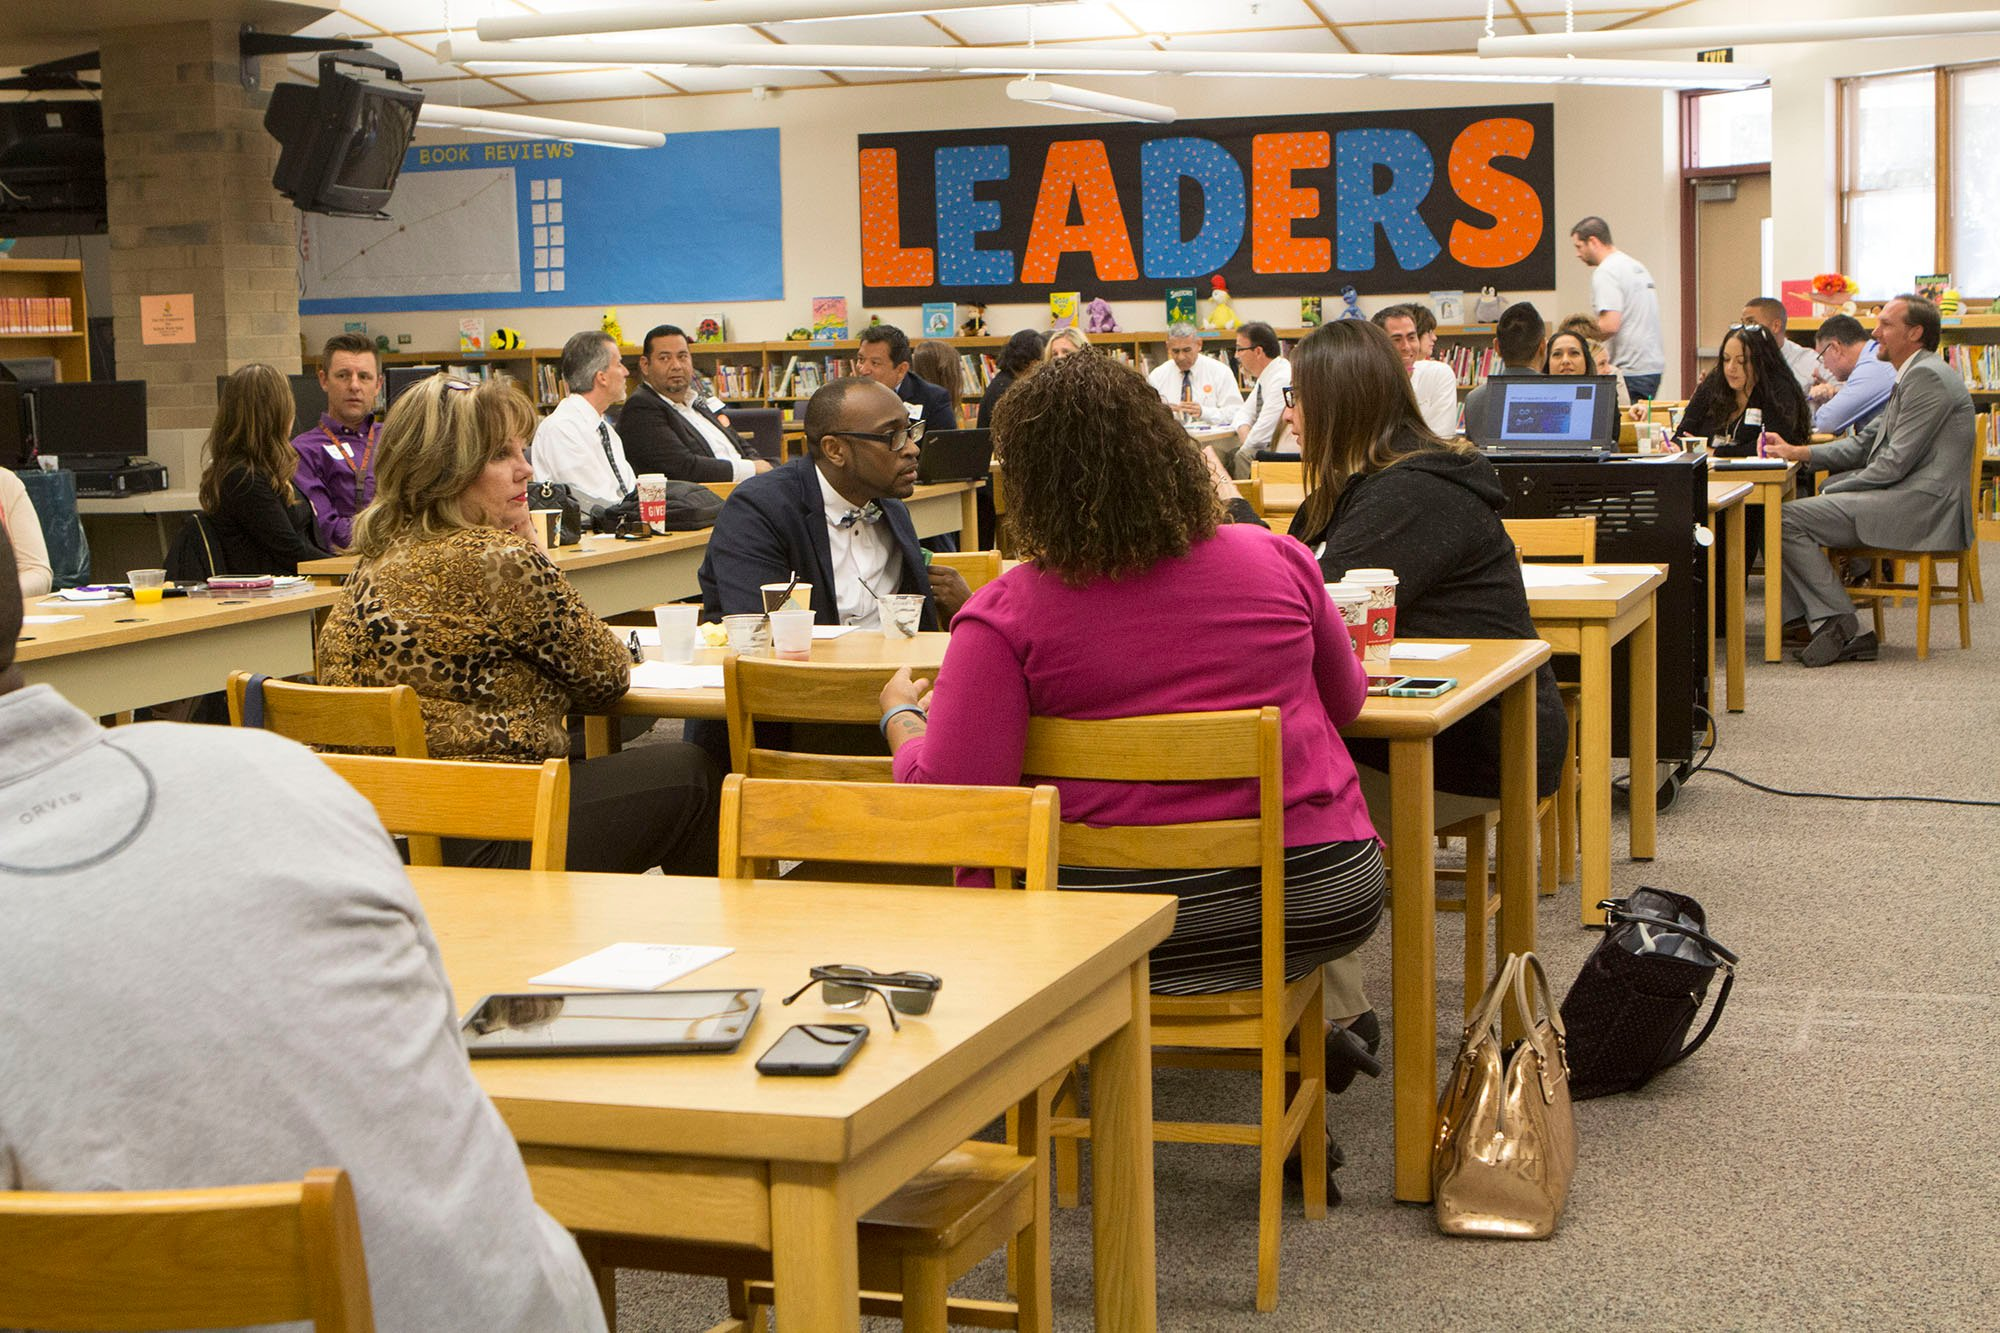 Several school administrators said sharing best practices and ideas helps them. (Photo by Paola Garcia/Cronkite News)